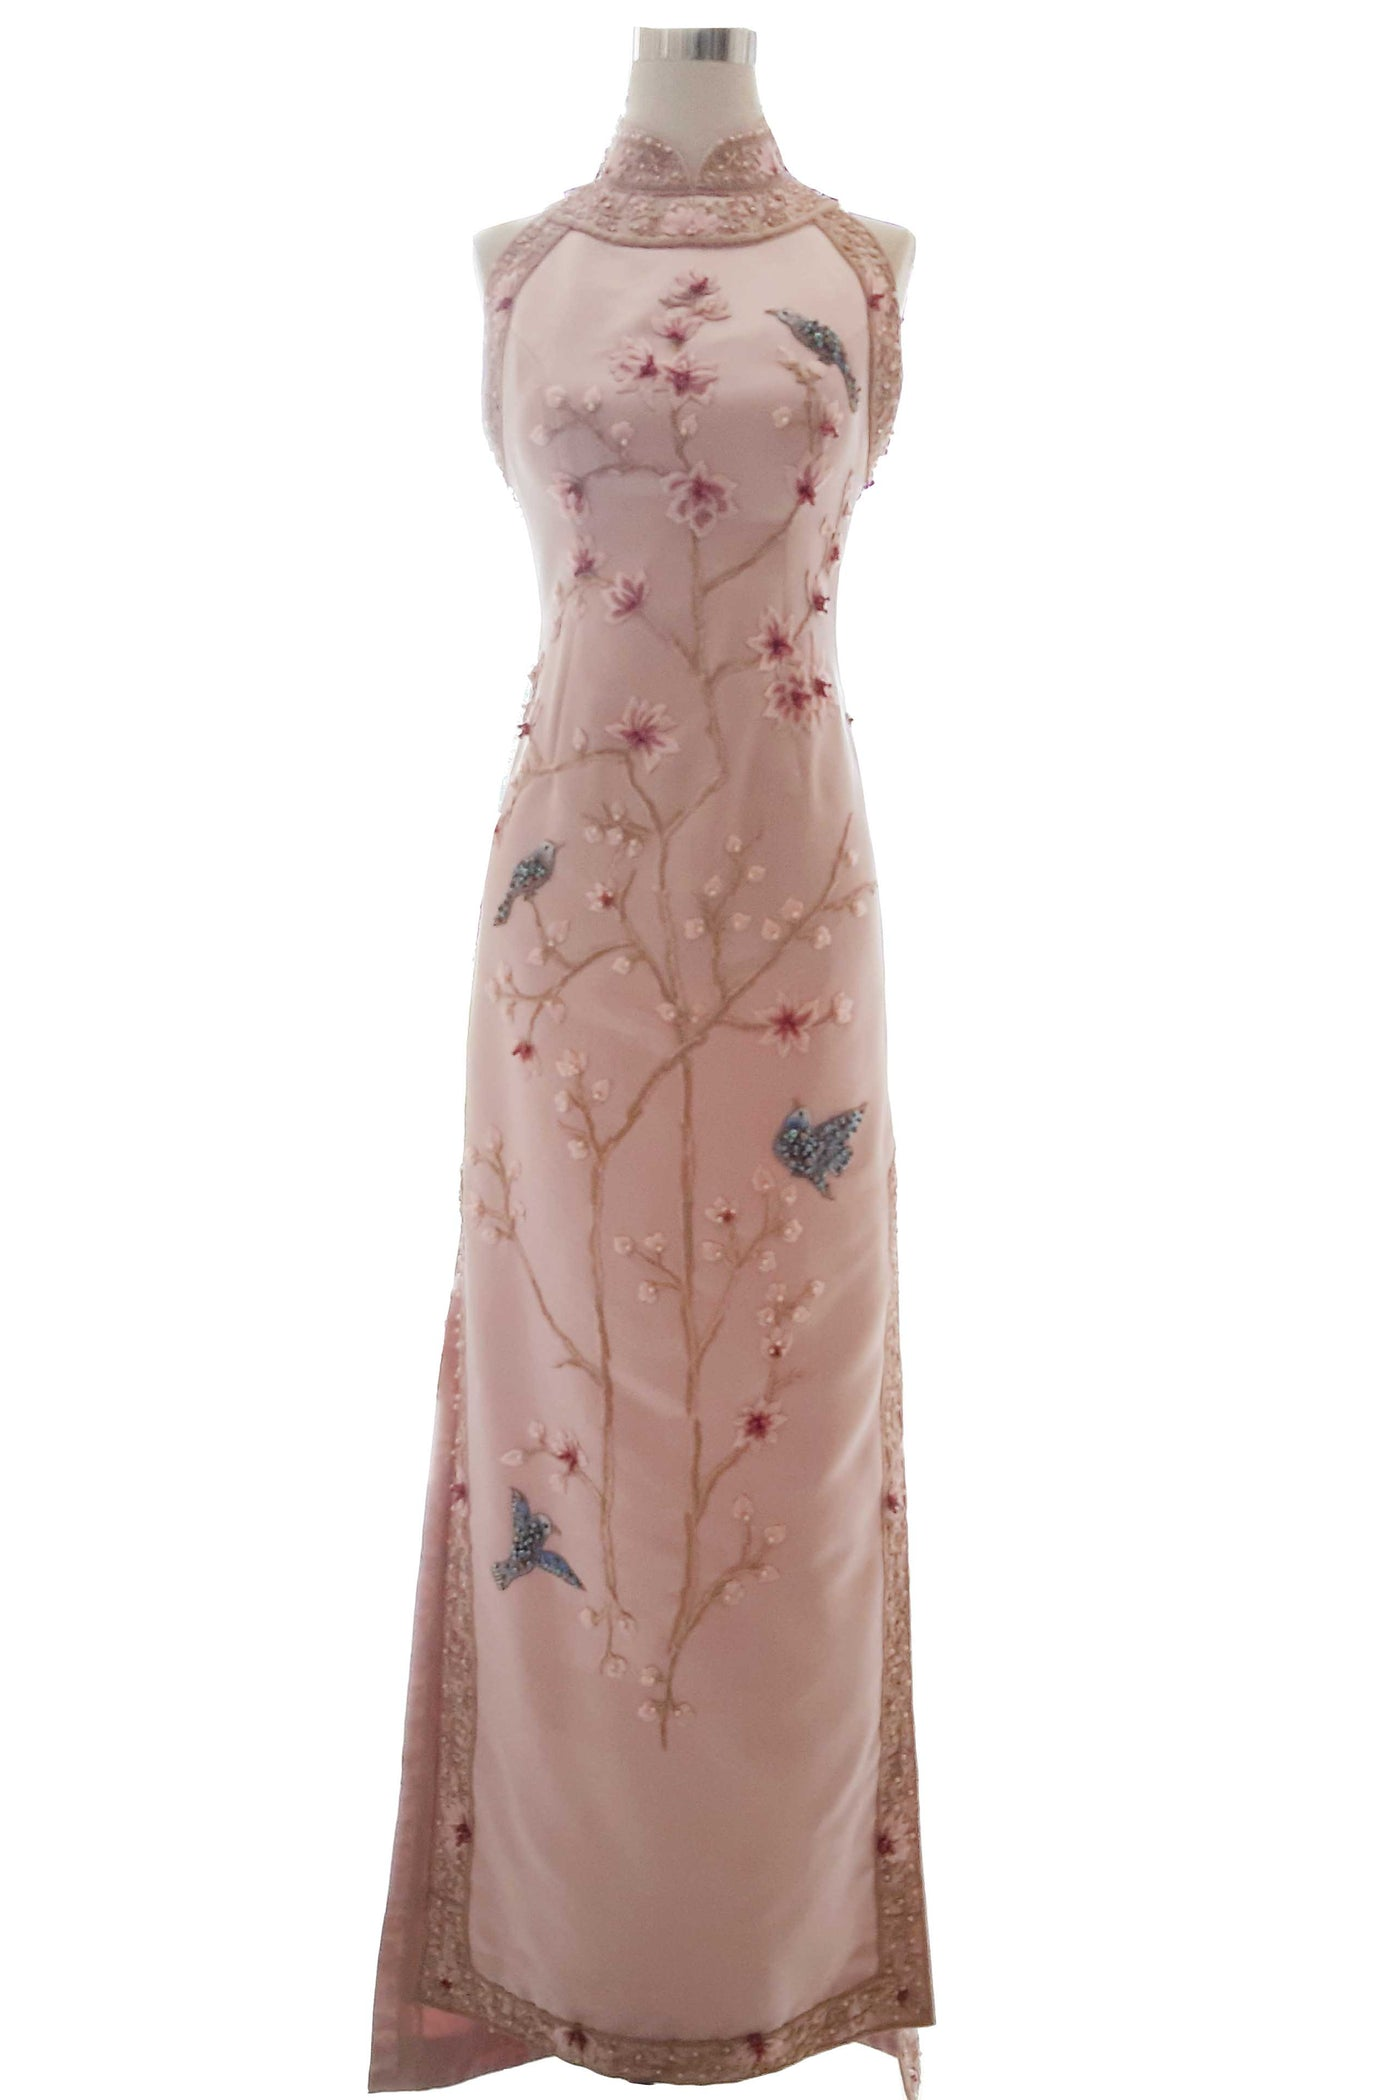 Rent : Private Label - Pink Cheongsam Dress